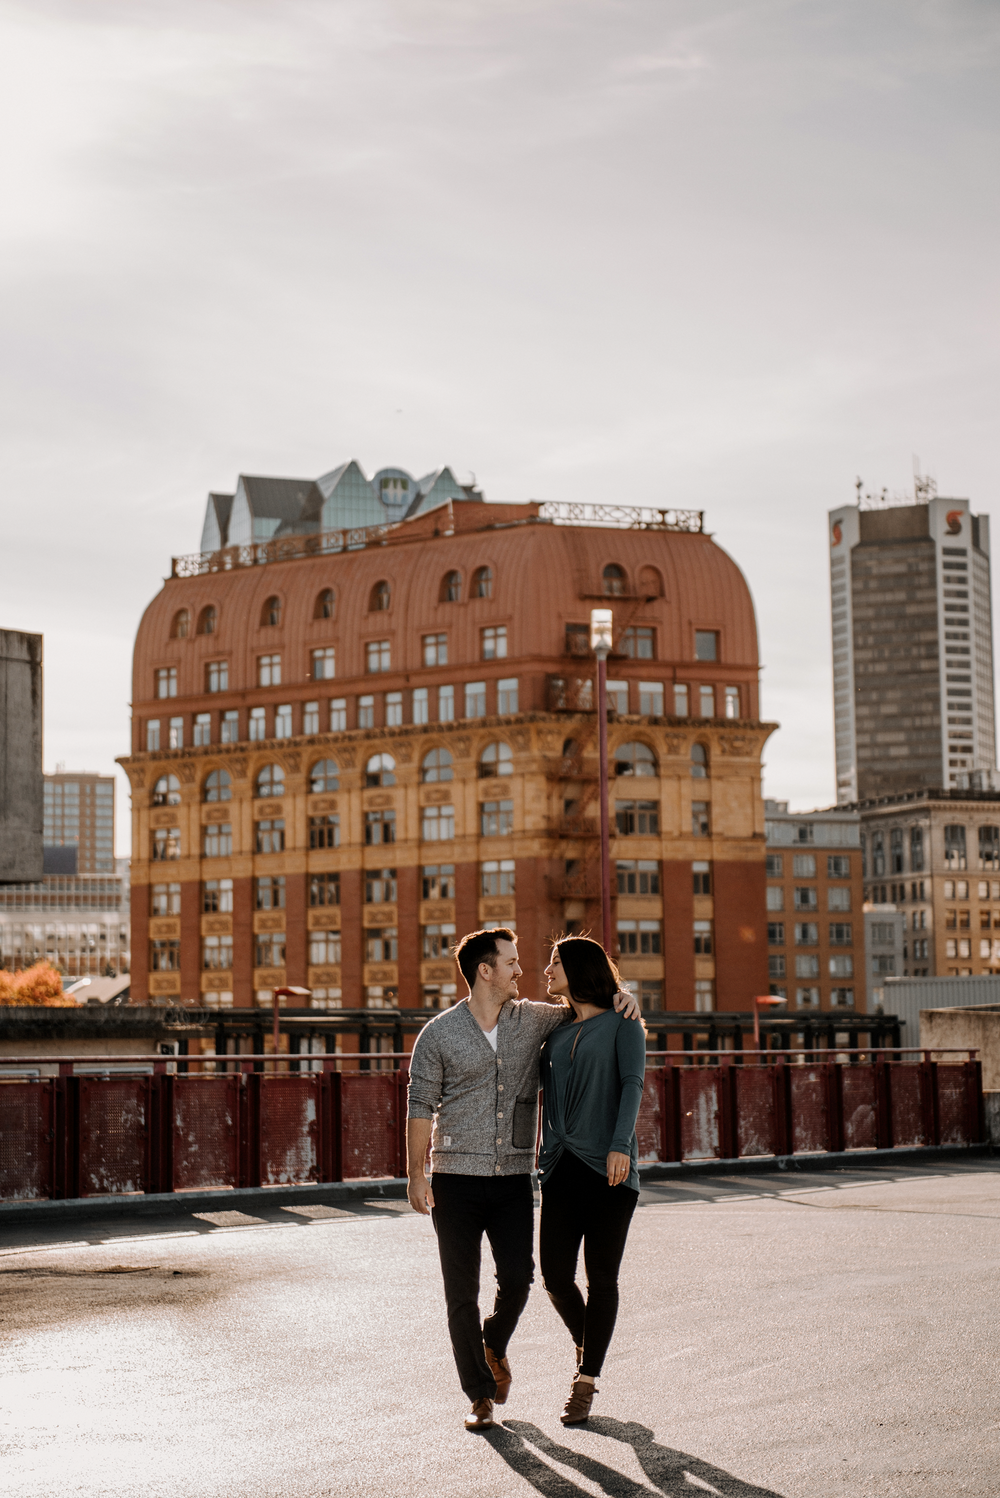 002-kaoverii-silva-CJ-prewedding-vancouver-photography-blog.png